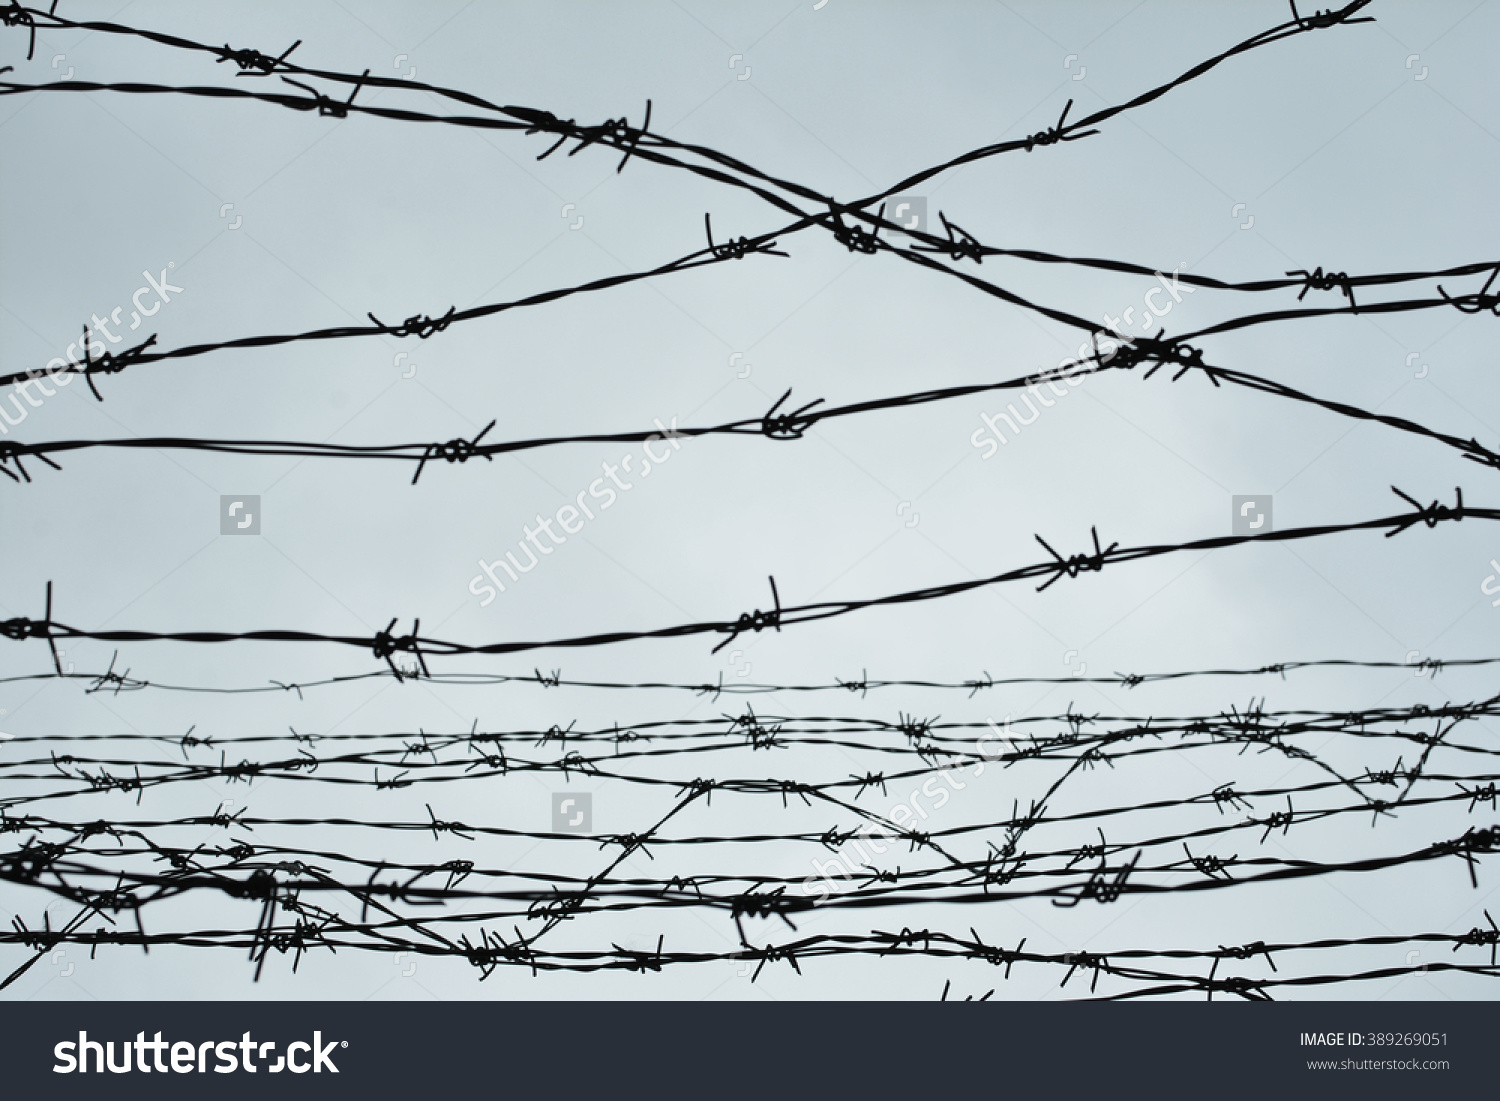 Barbed wire tensioner clipart - Clipground